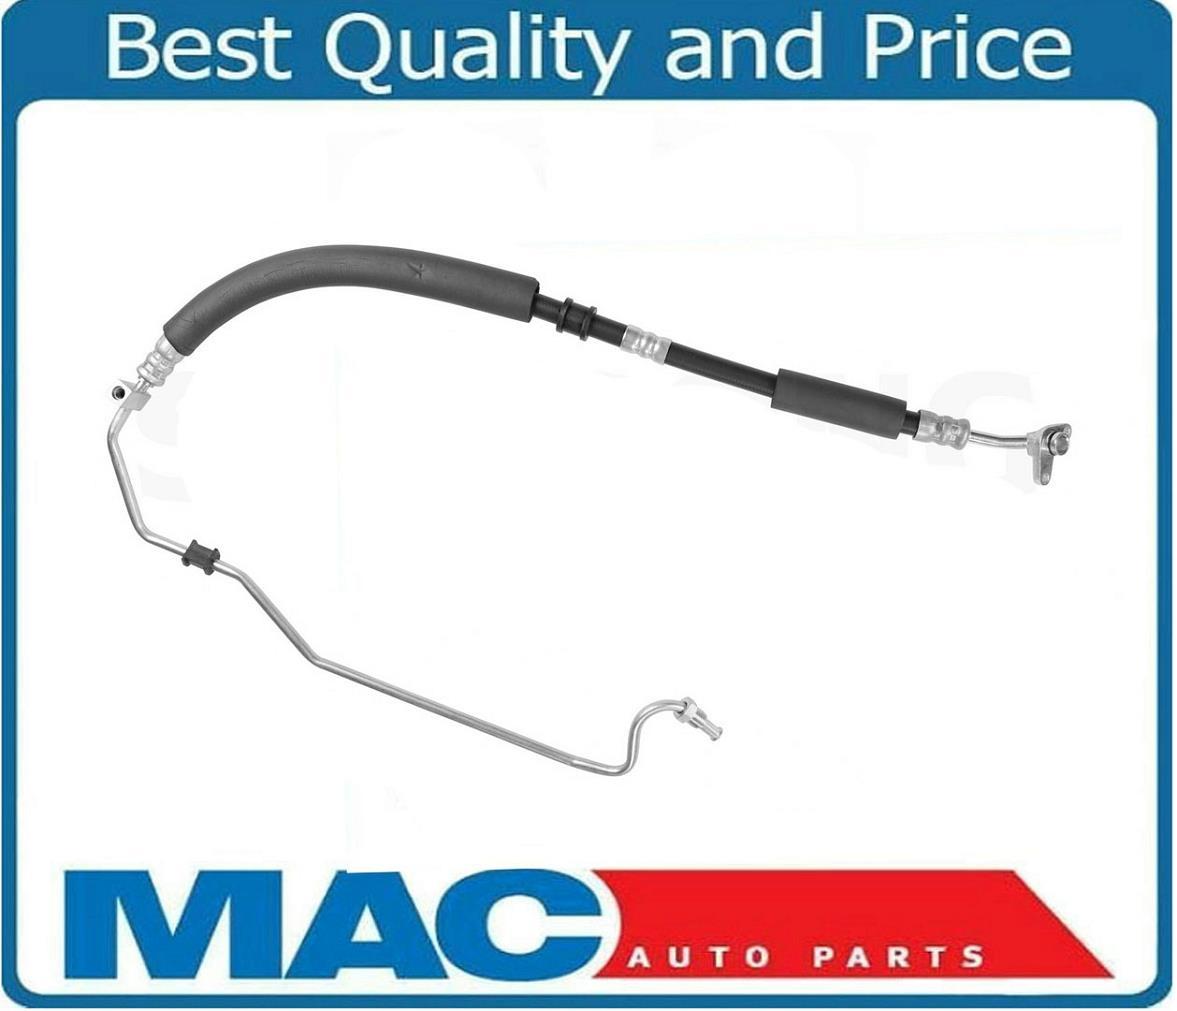 Power Steering Pressure Hose Assembly Fits For 04-08 Acura